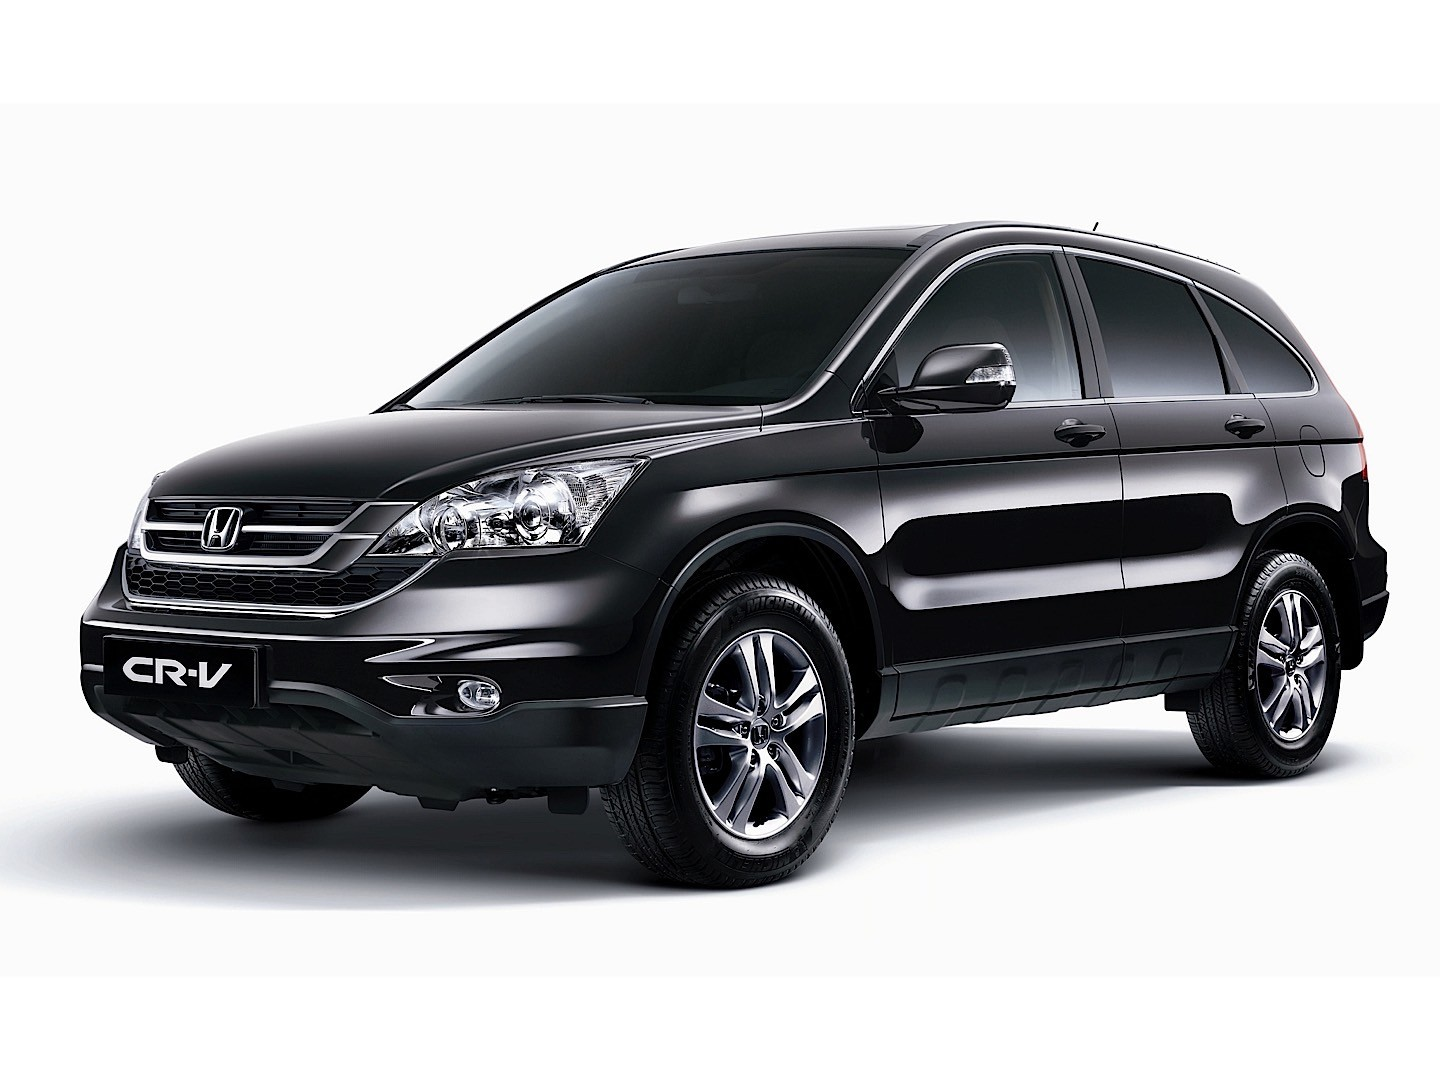 honda cr v specs photos 2010 2011 autoevolution. Black Bedroom Furniture Sets. Home Design Ideas